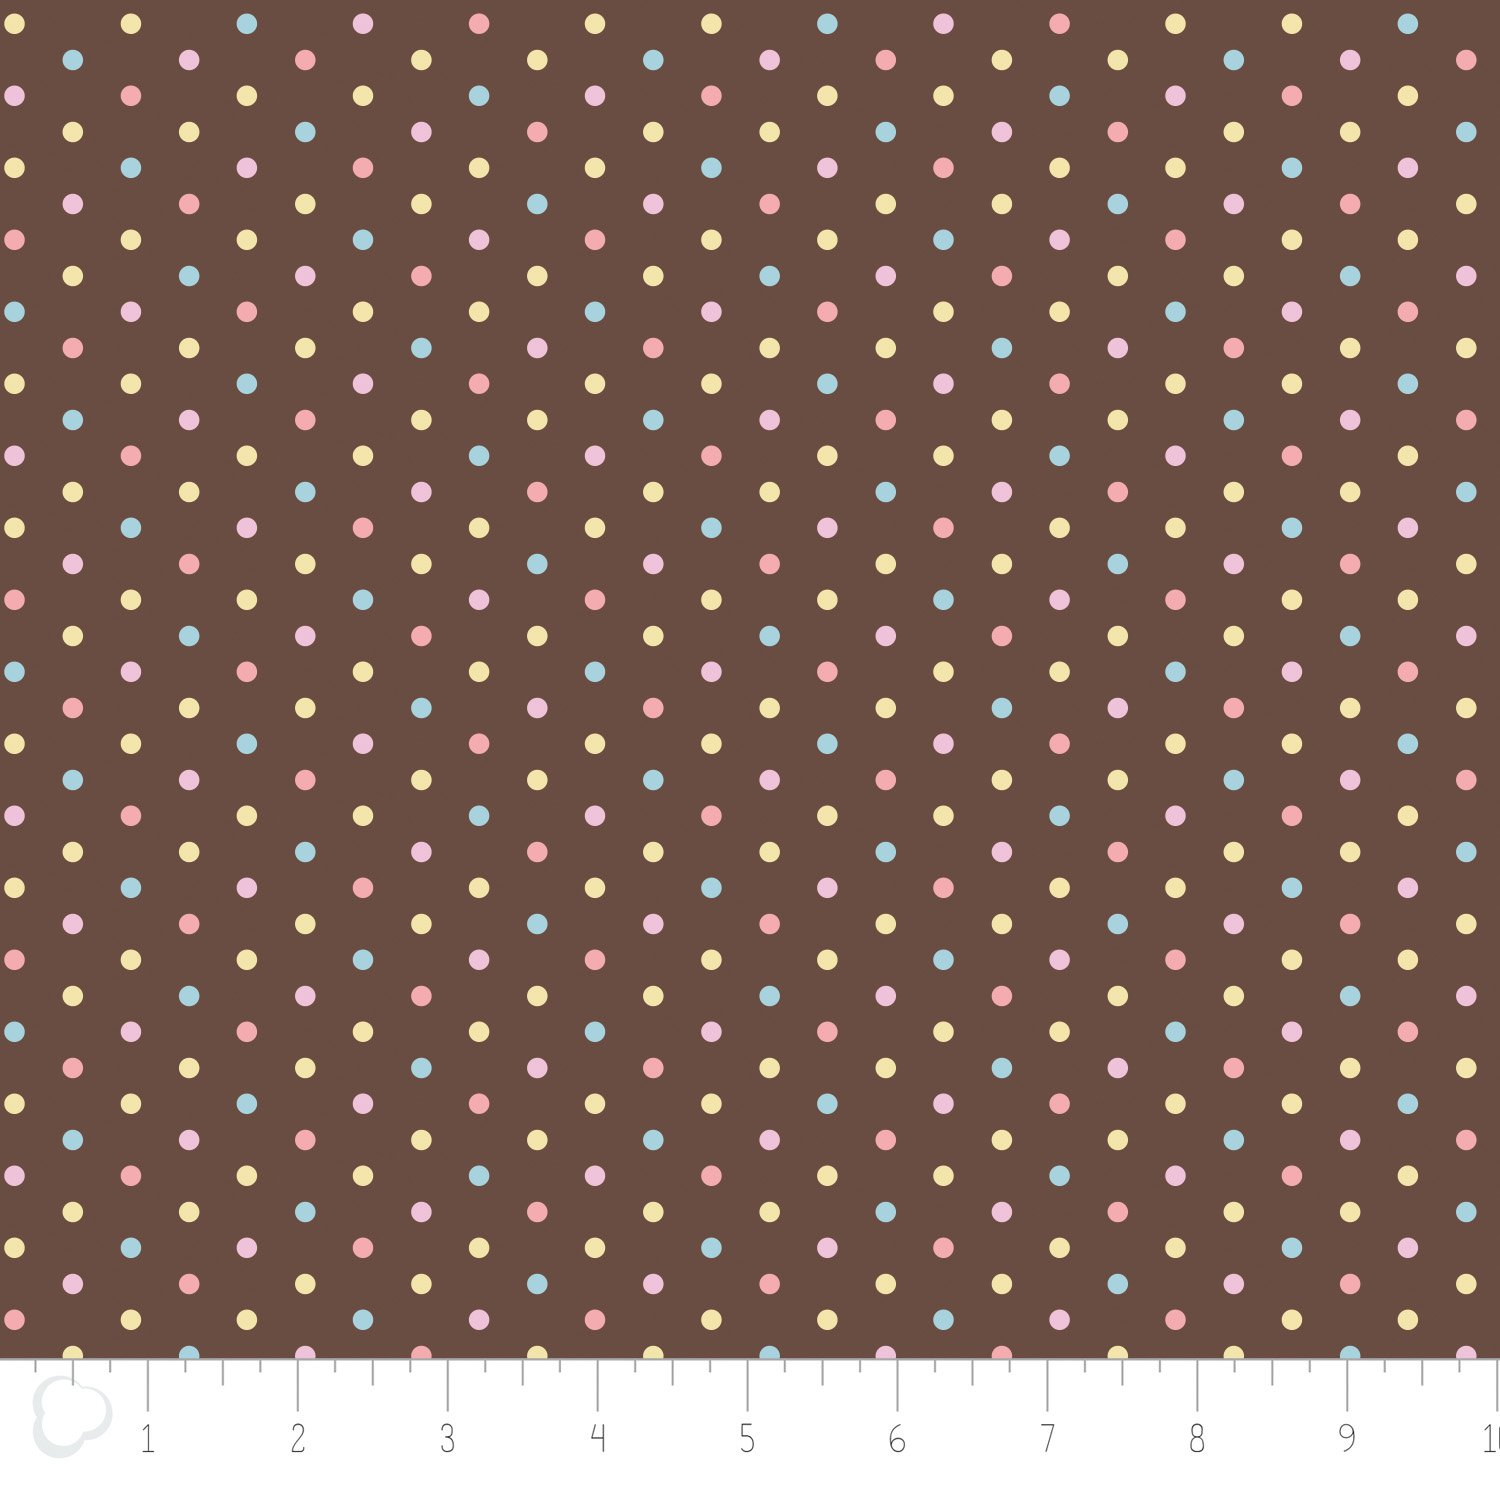 Dots in brown flannel